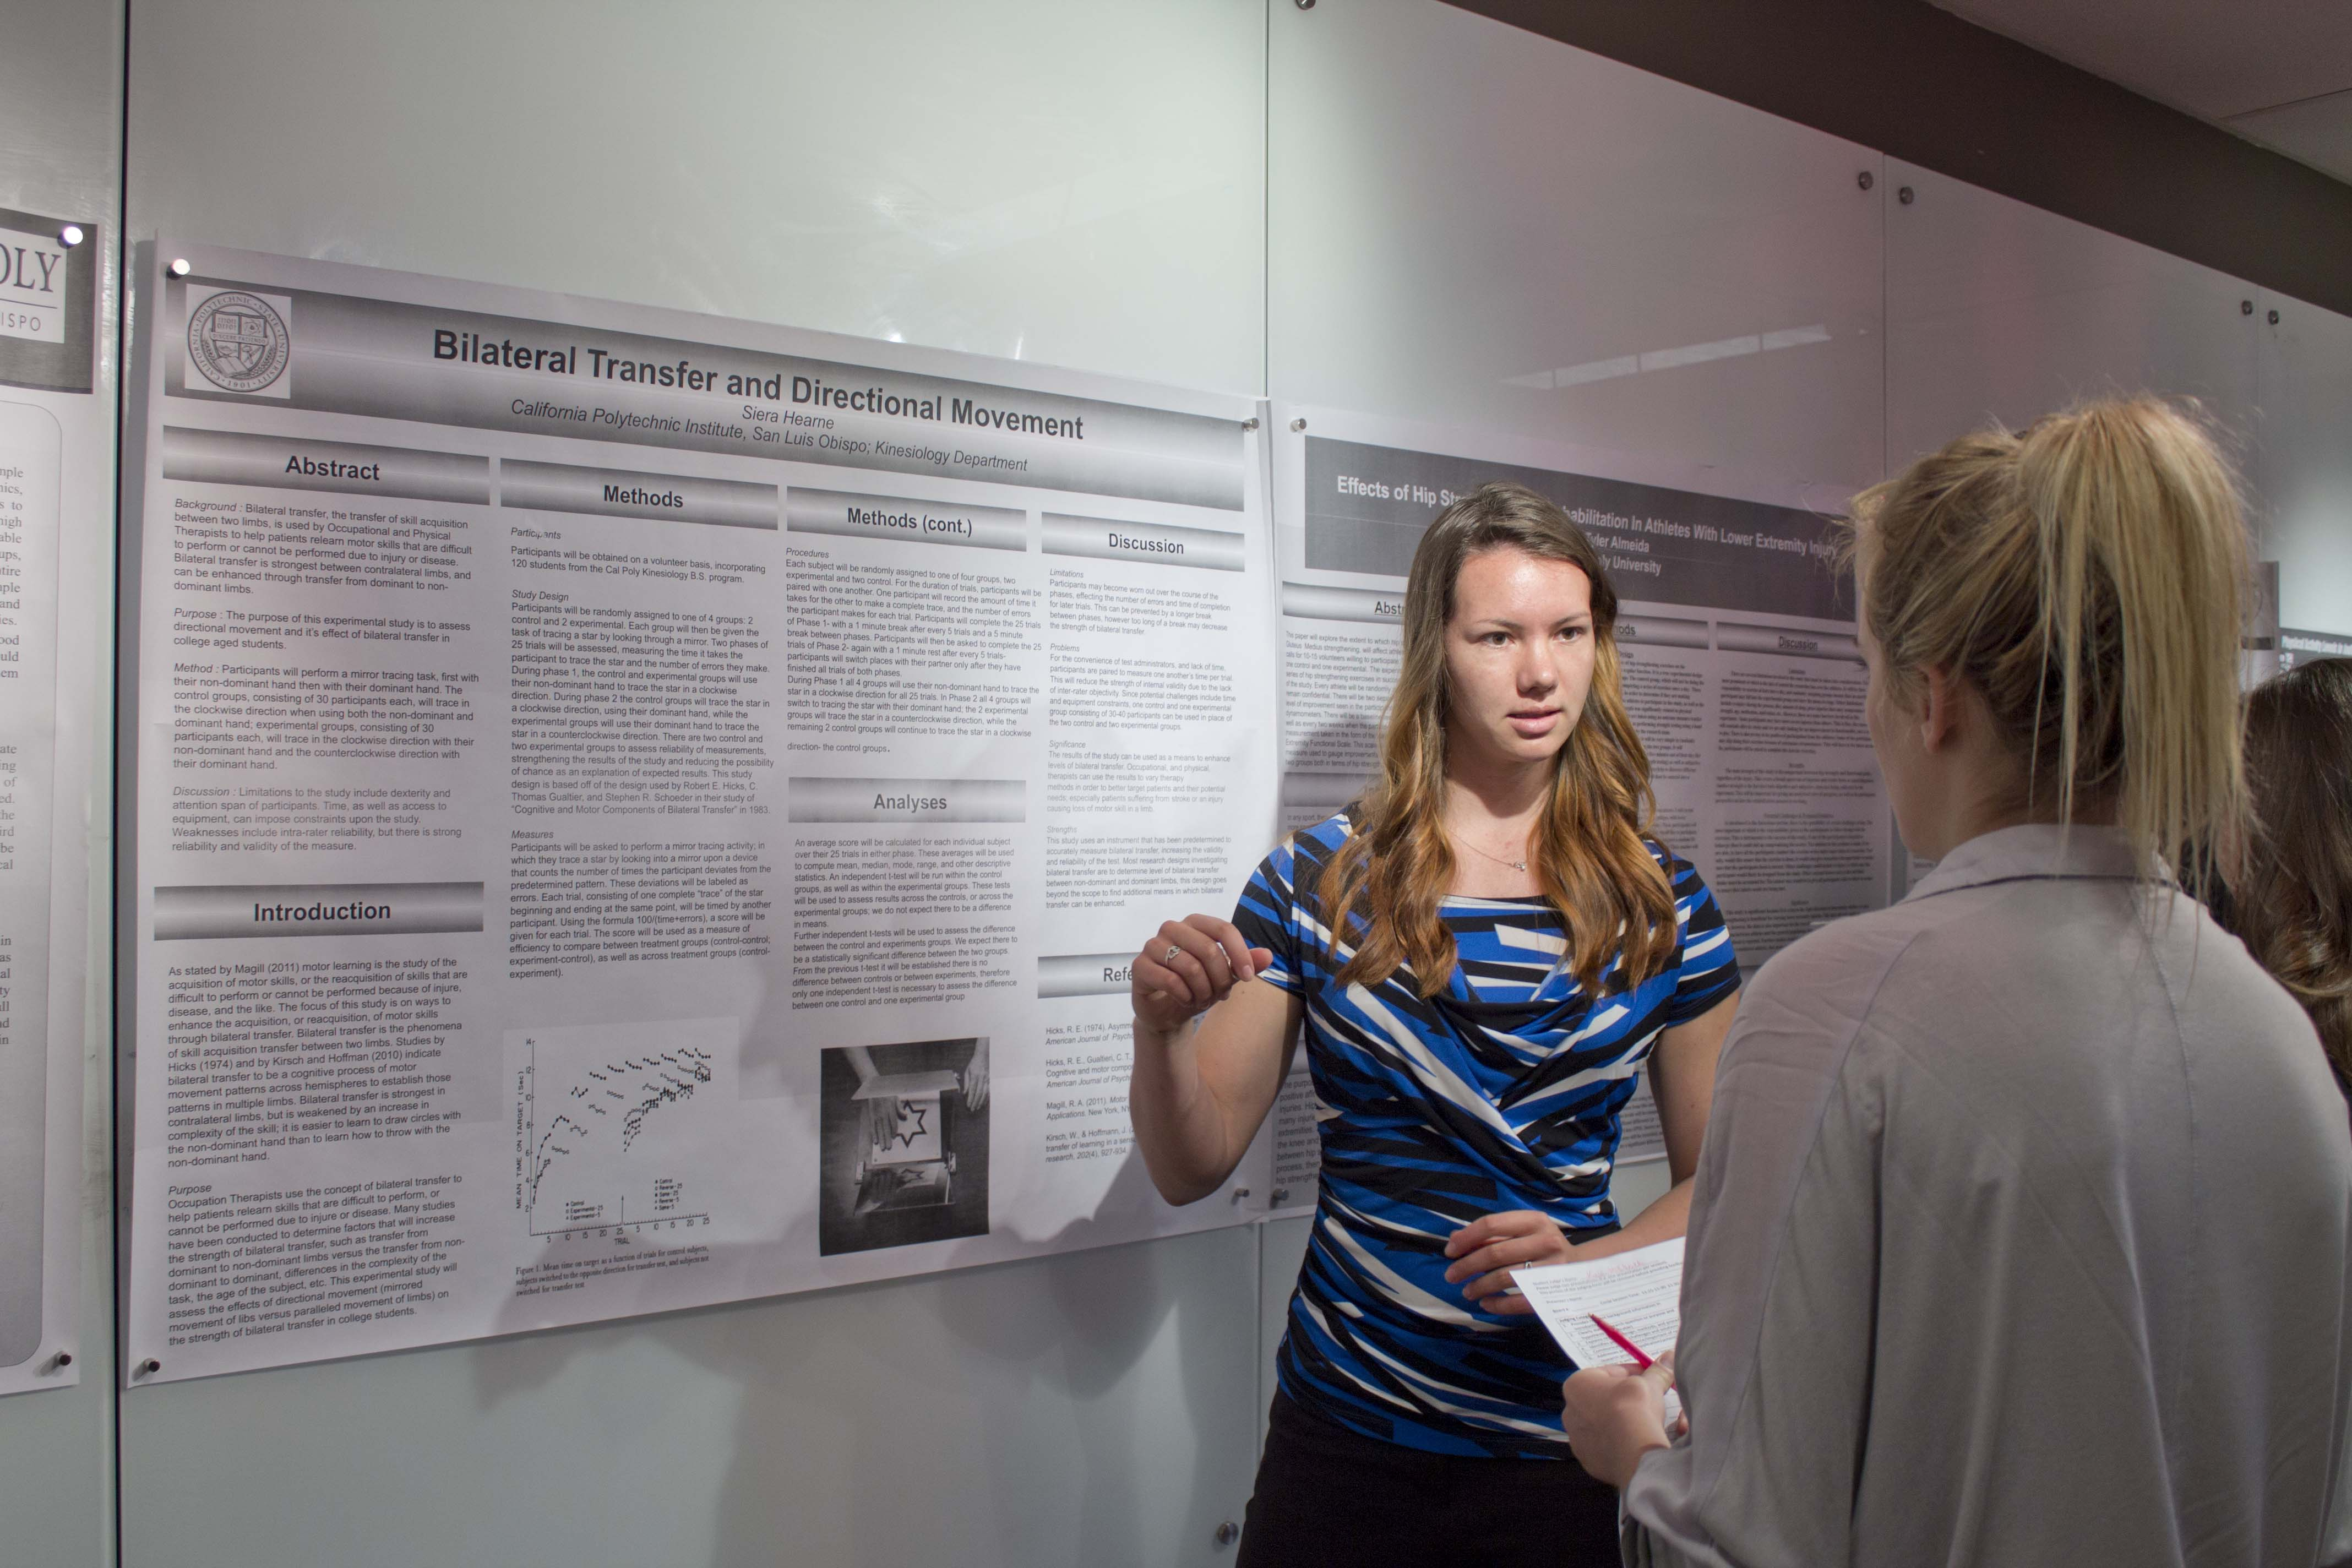 A woman with long hair and a blue, black and white top stands in front of a poster proposing a kinesiology research project. She is talking to a blonde woman standing in the foreground with her back to the camera.